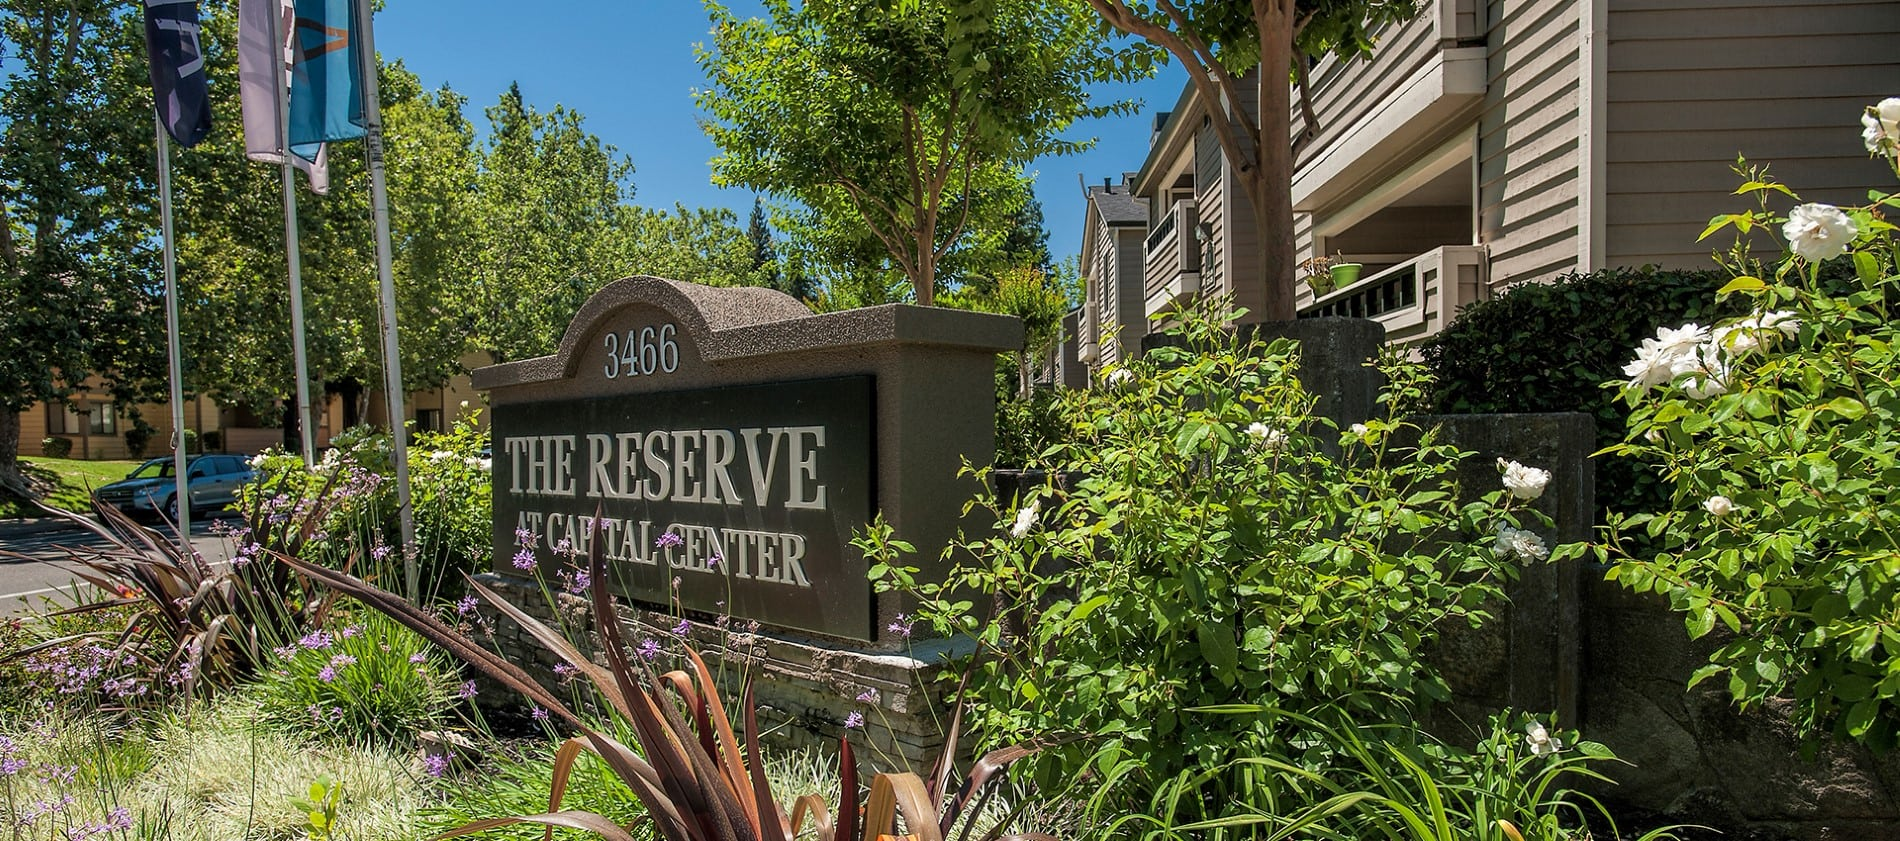 Signage at Reserve at Capital Center Apartment Homes in Rancho Cordova, CA